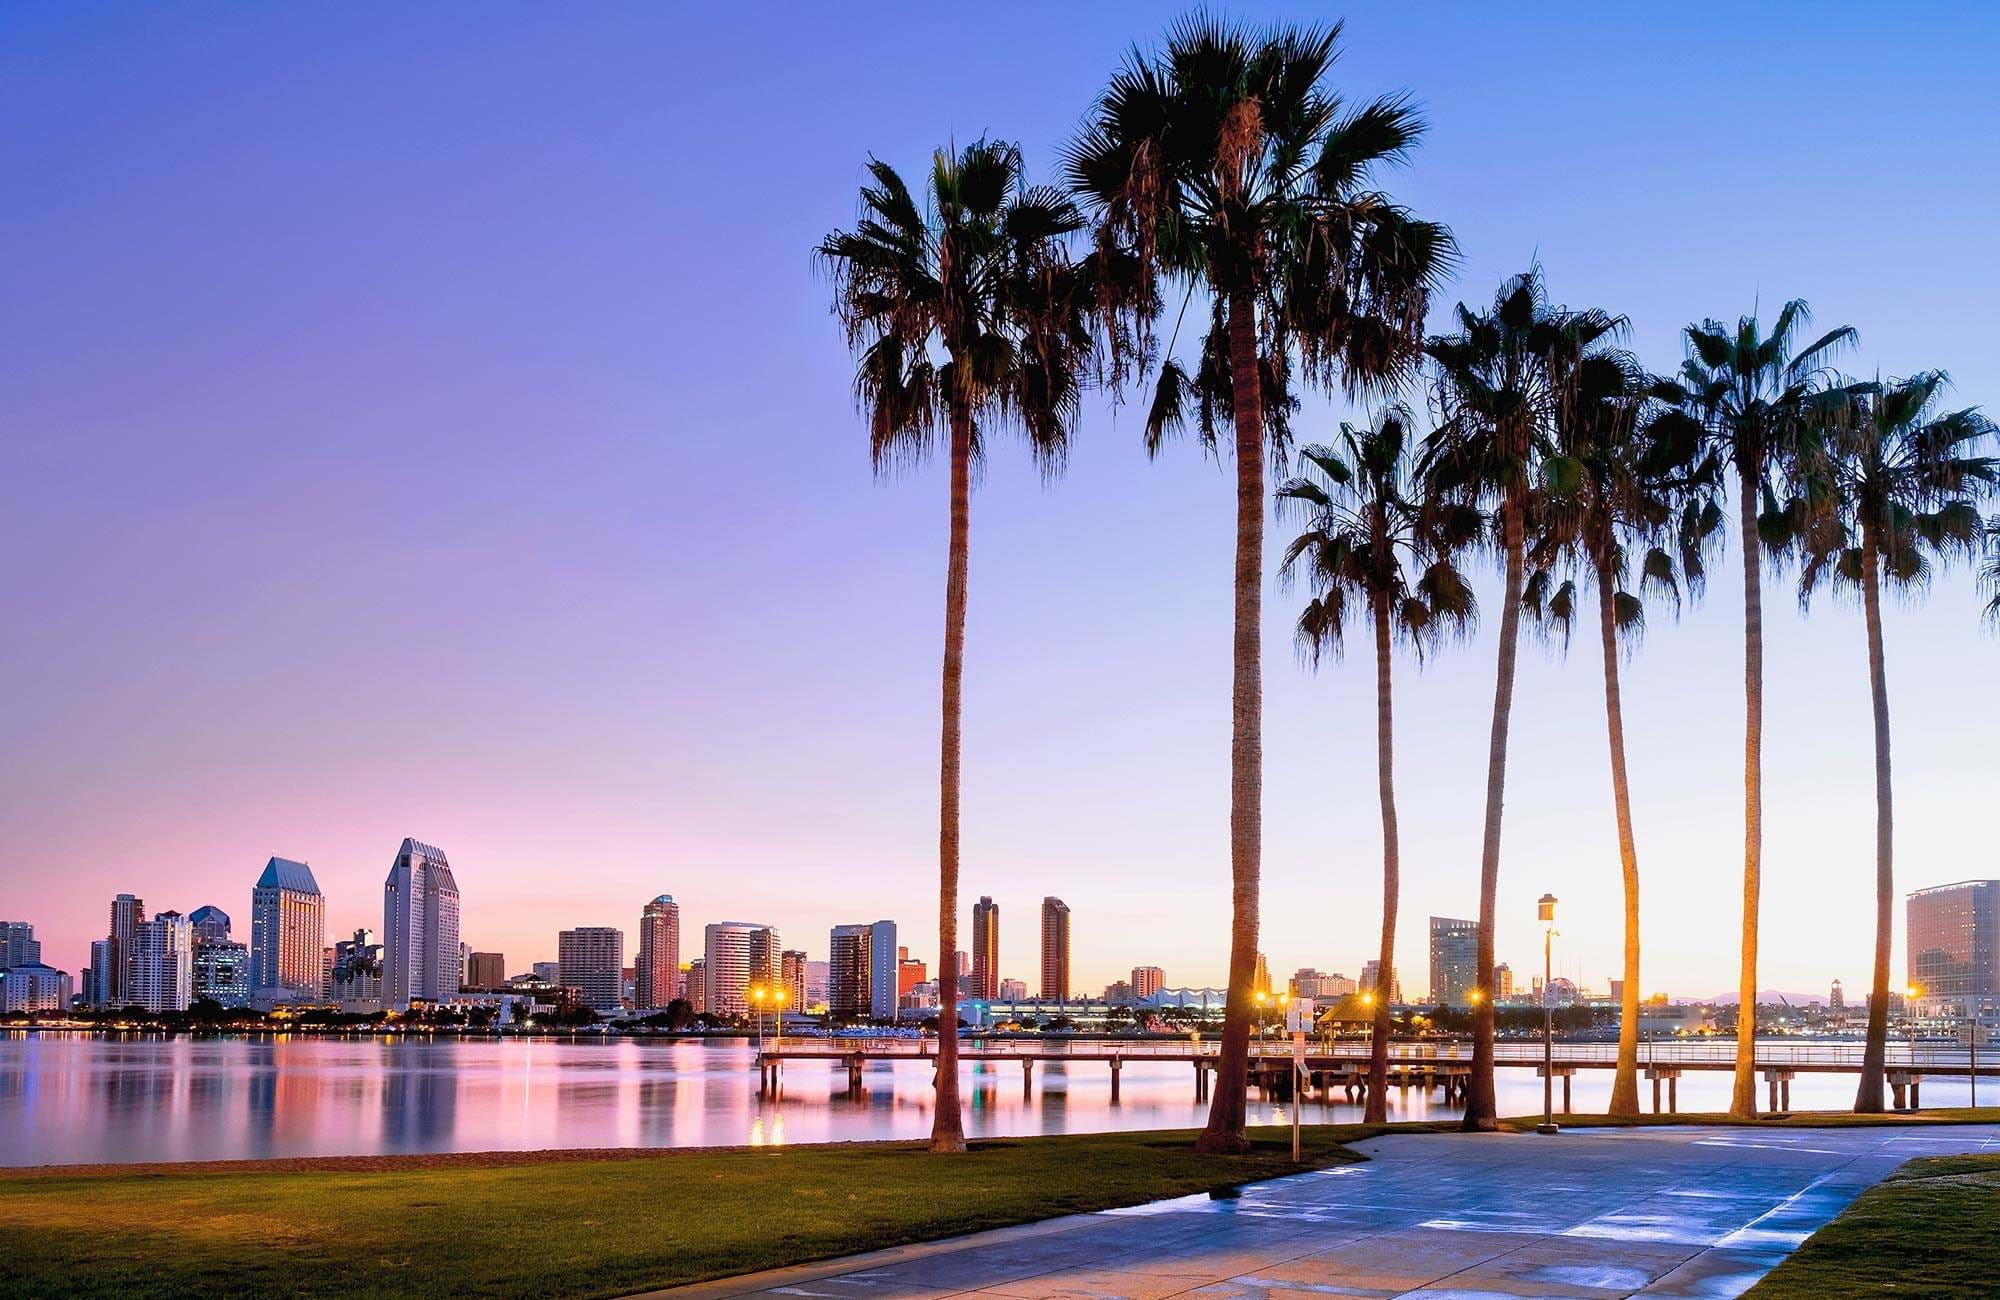 north-america-usa-san-diego-palmtree-water